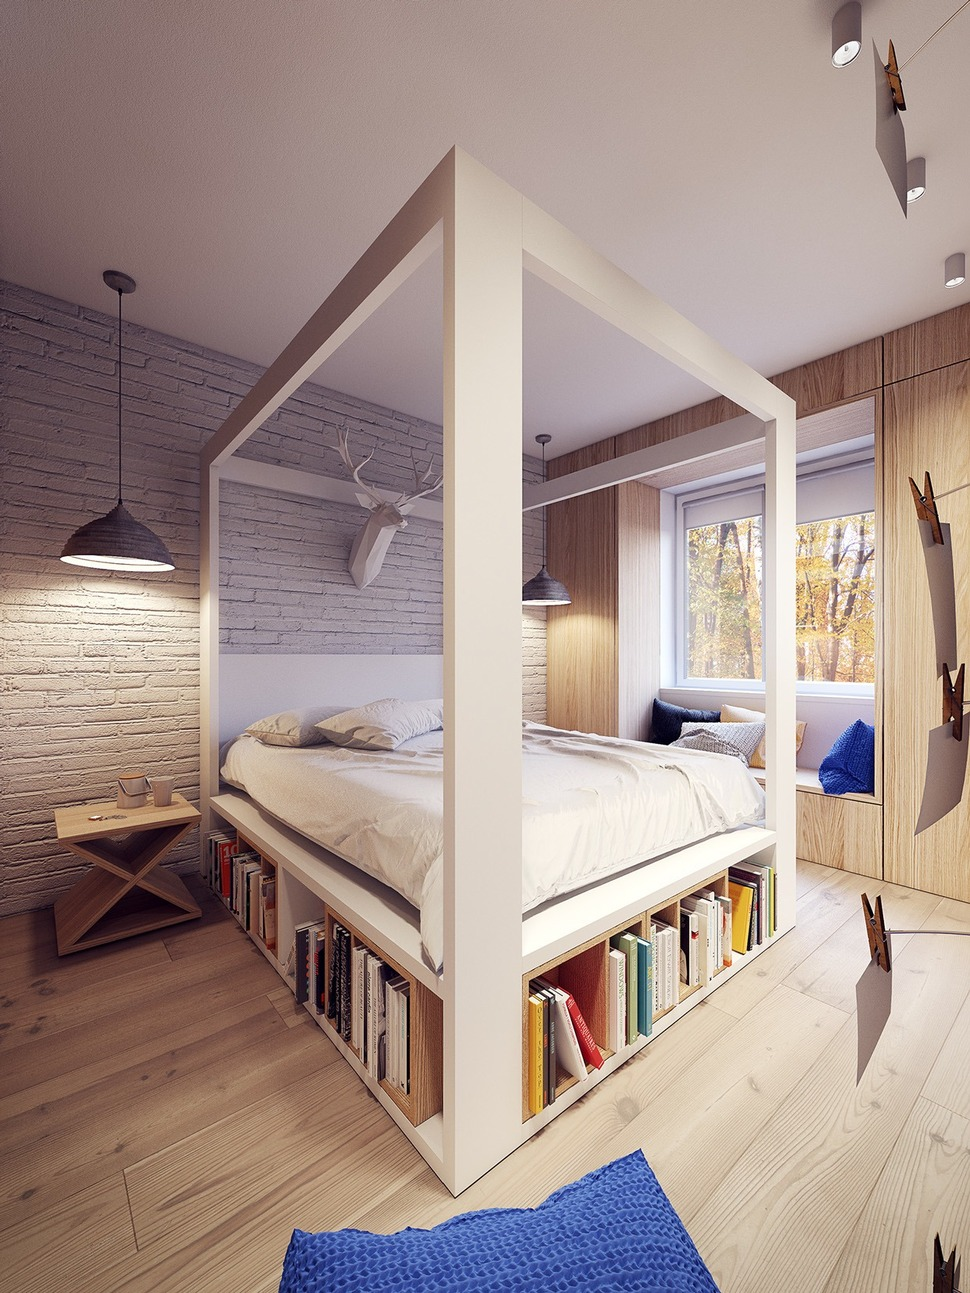 four-poster-canopy-bed-with-bookshelves-thumb-970xauto-52413.jpg